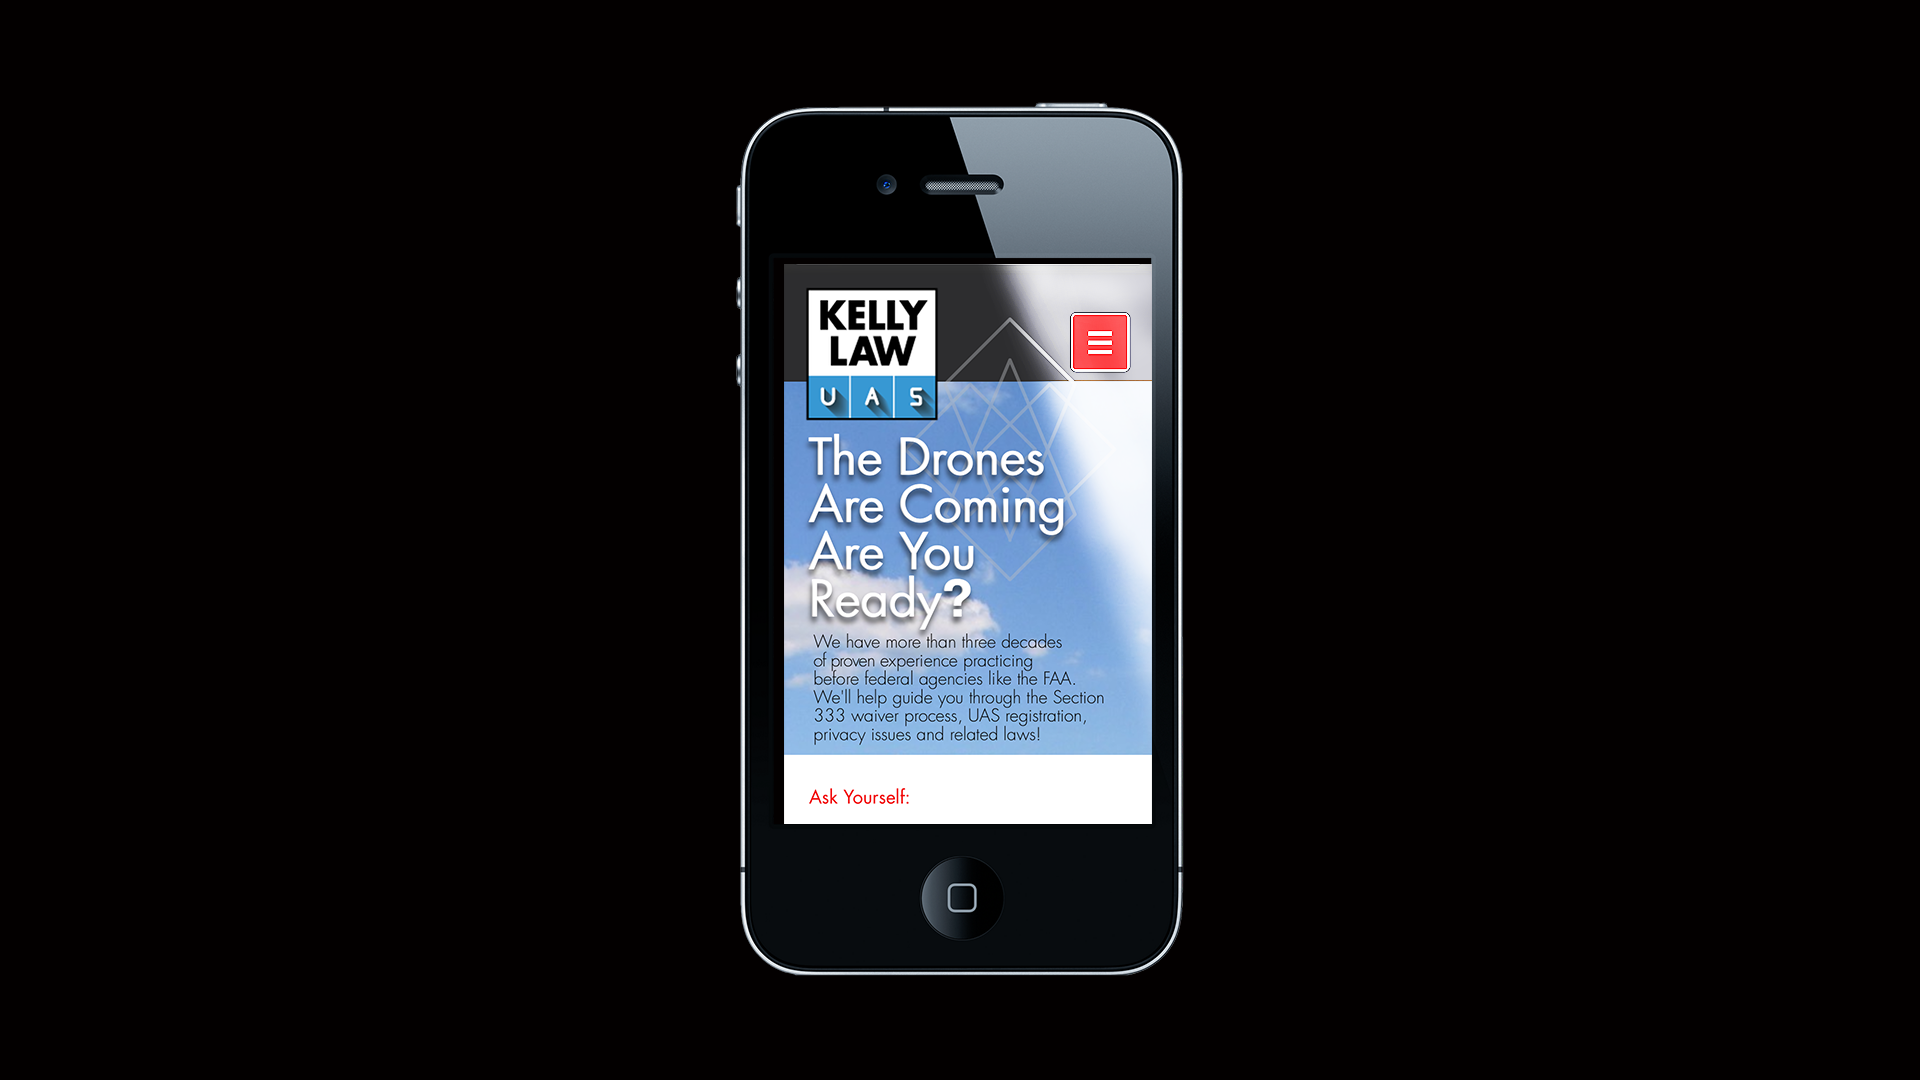 Kelly Law UAS mobile site